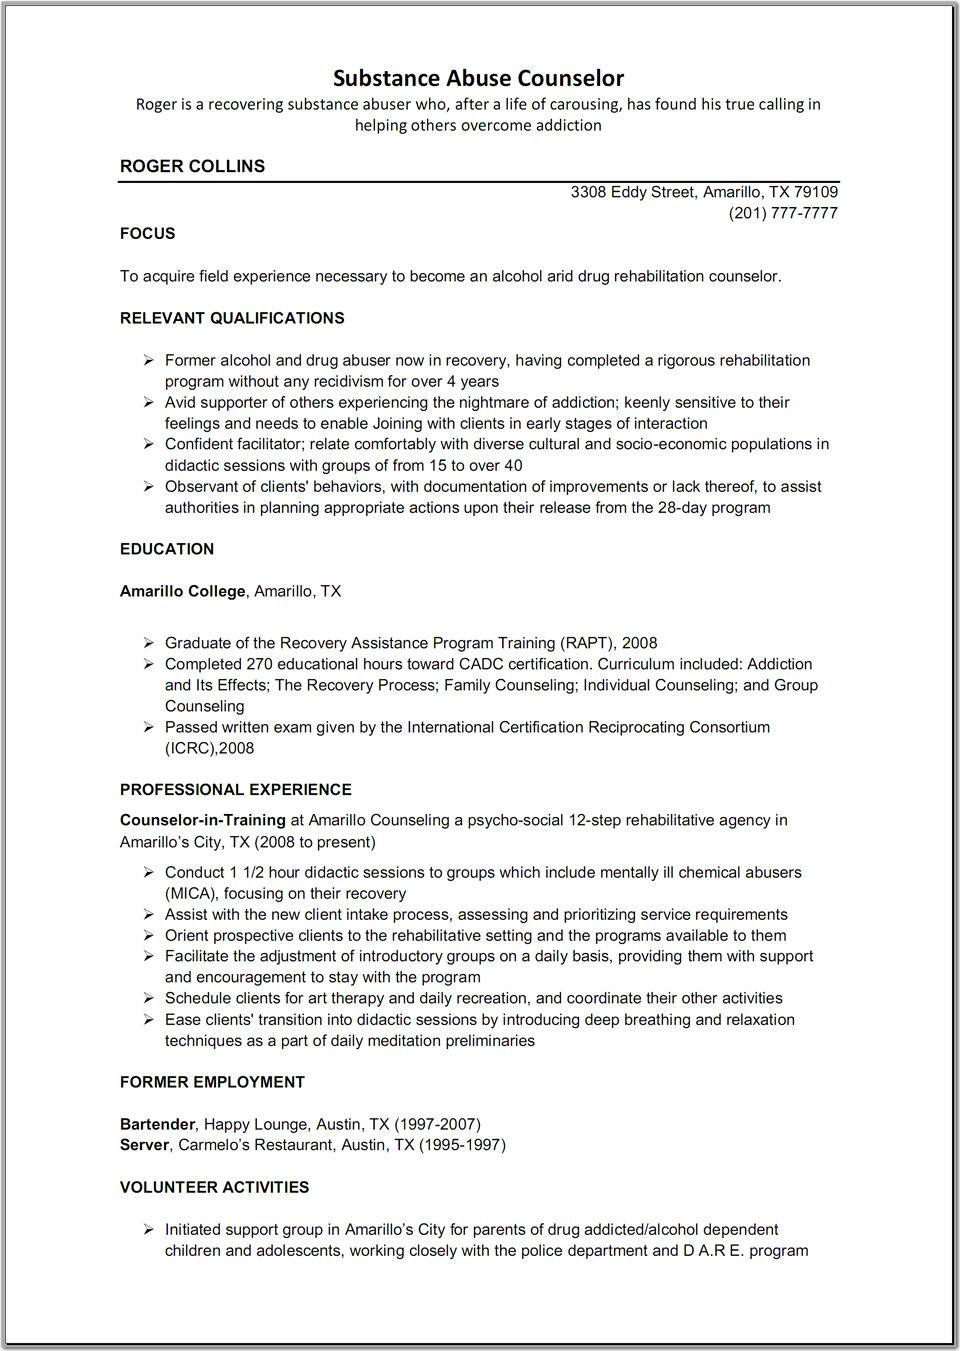 Amazing Substance Abuse Counselor Resume Template In Substance Abuse Counselor Resume